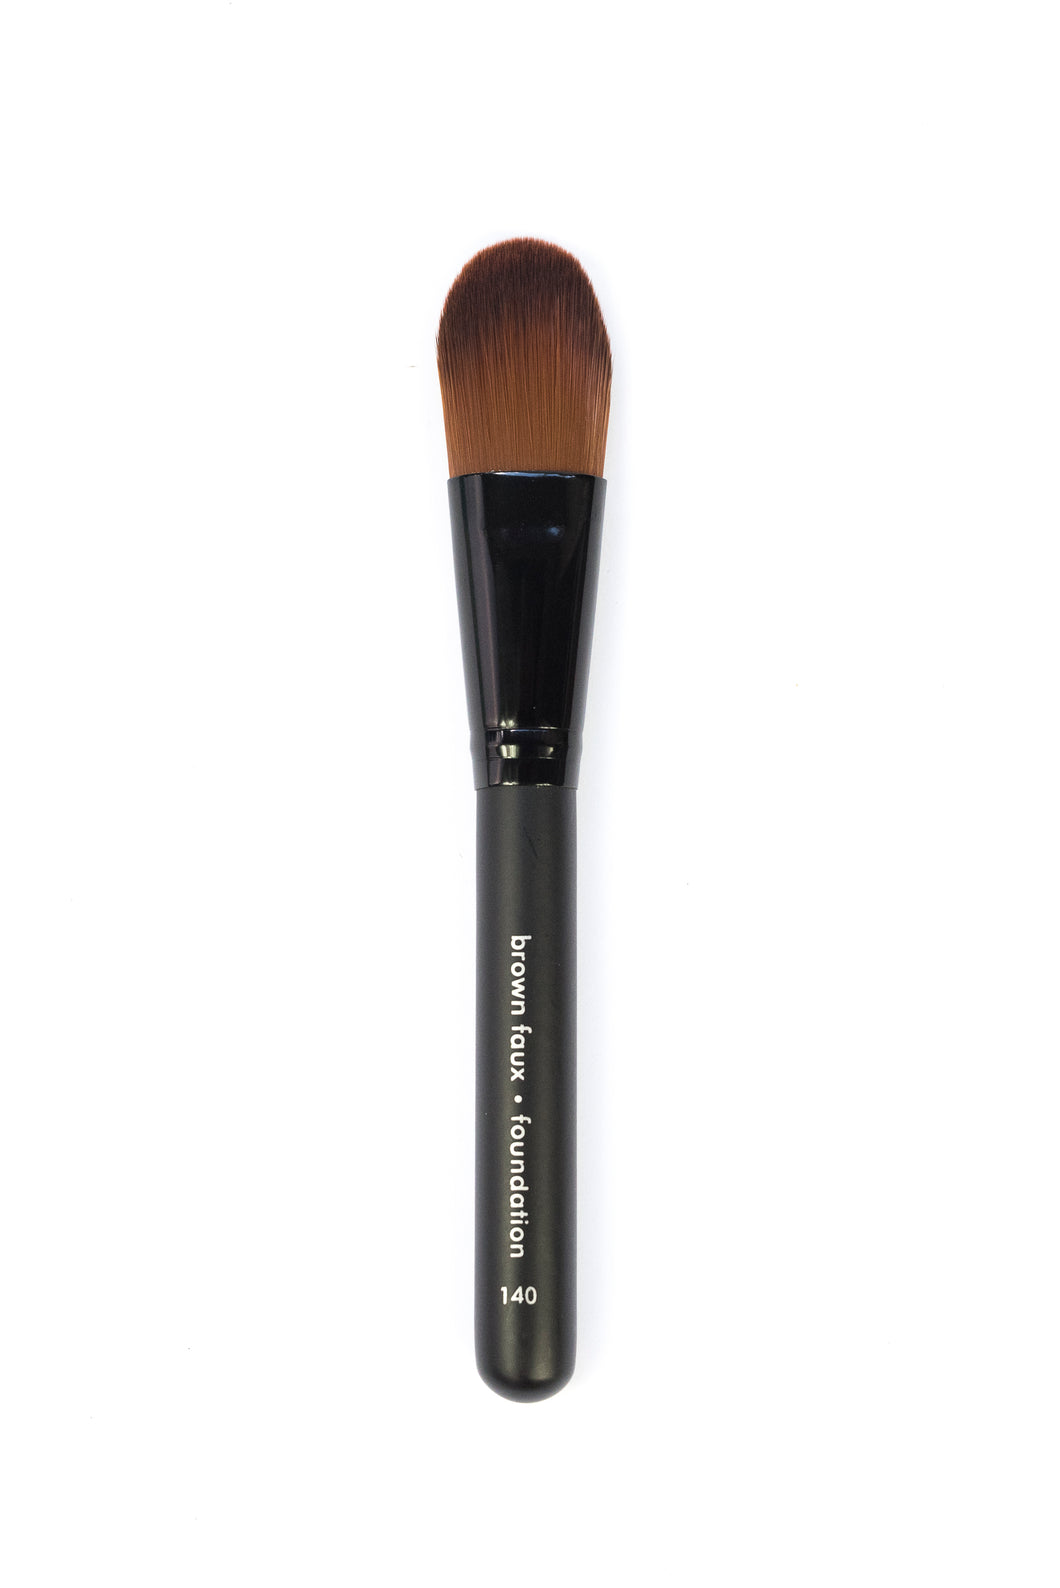 Foundation Brush - Alluring Minerals